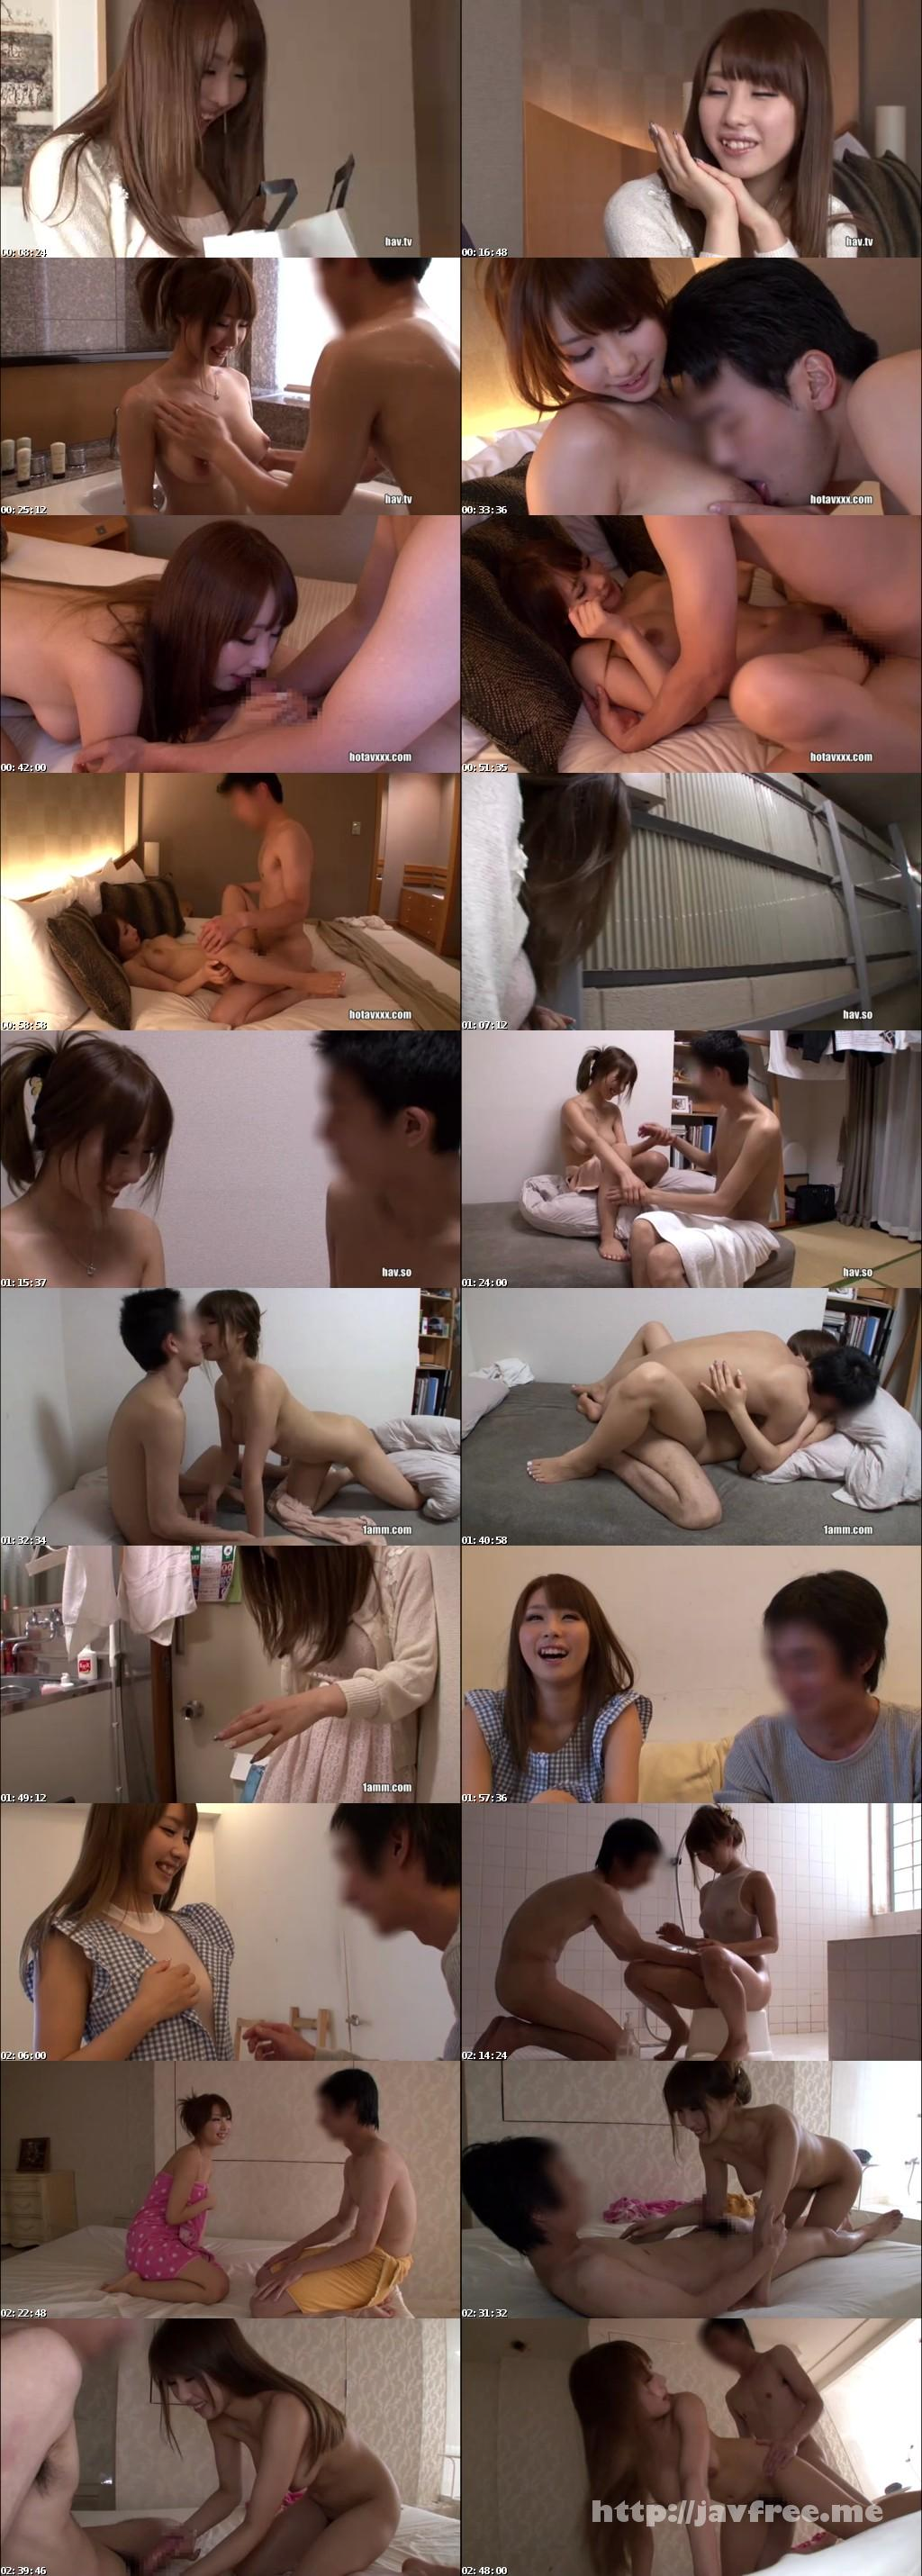 [ABP-049] 童貞くんとあやみちゃん - image ABP-049 on https://javfree.me